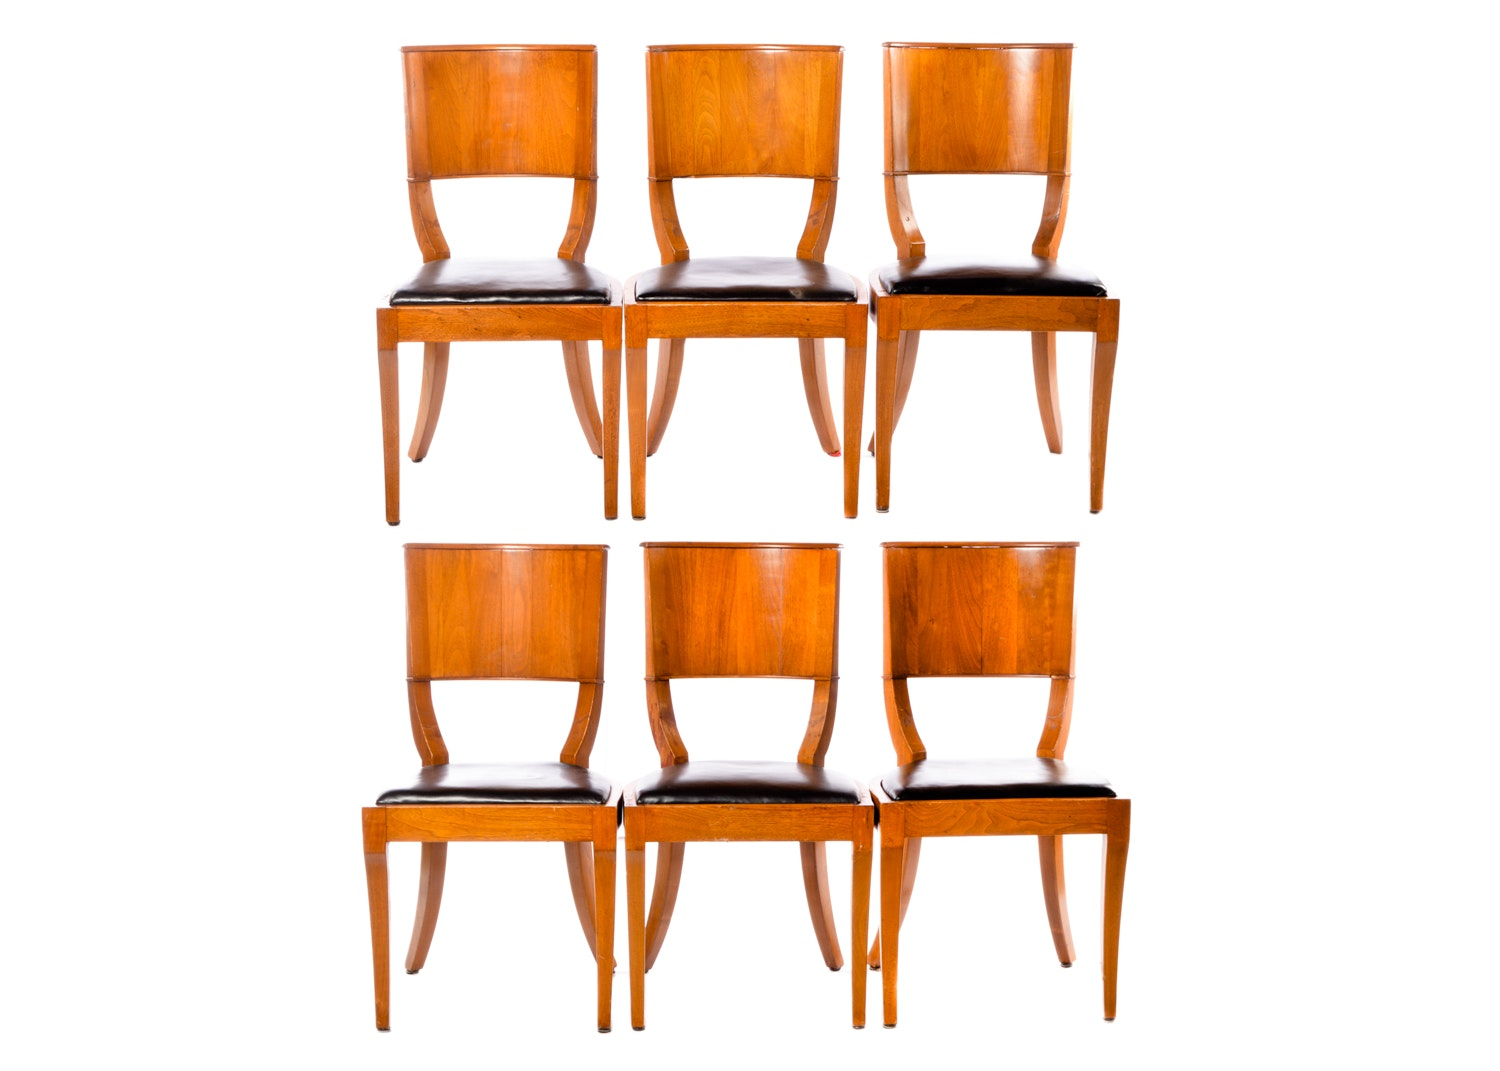 Art Deco Style Nut Wood Klismos Chair Set, 20th Century